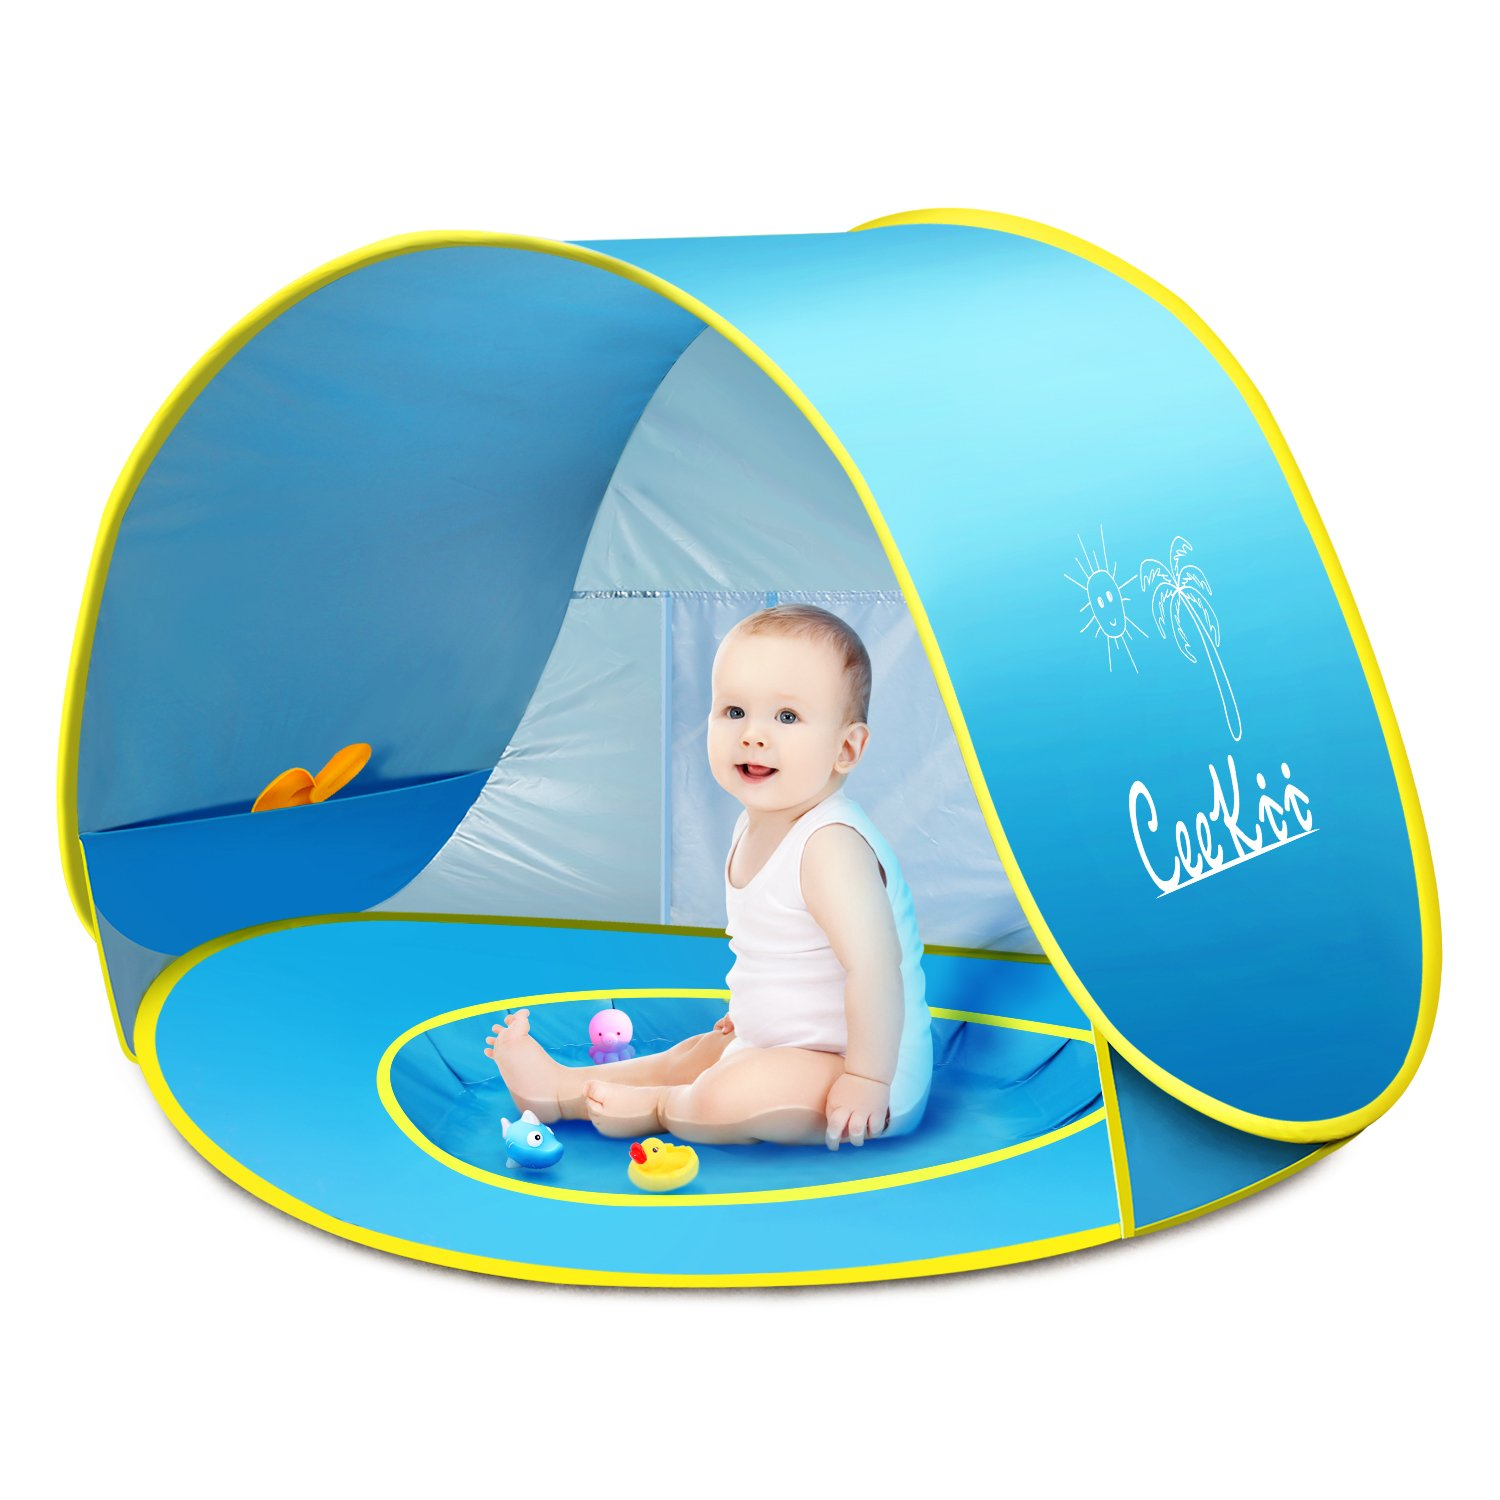 CeeKii Baby Beach Tent Pop Up Tent Portable Shade Pool UV Protection Sun Shelter with Mini Pool